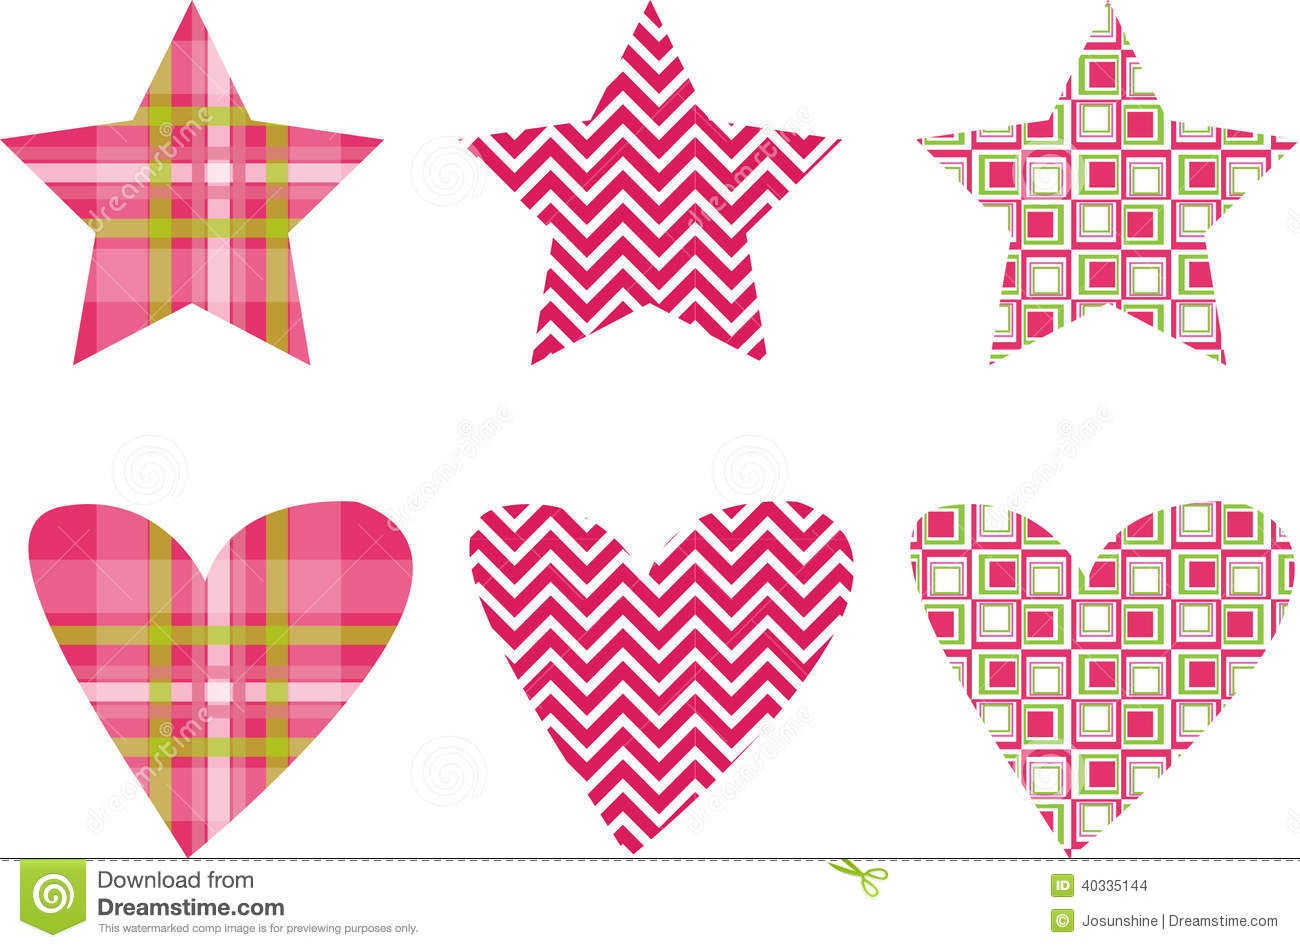 Heartbeat Pattern Heartbeat Vector Pattern Vector: Cute Star & Heart Pattern Vectors Stock Vector